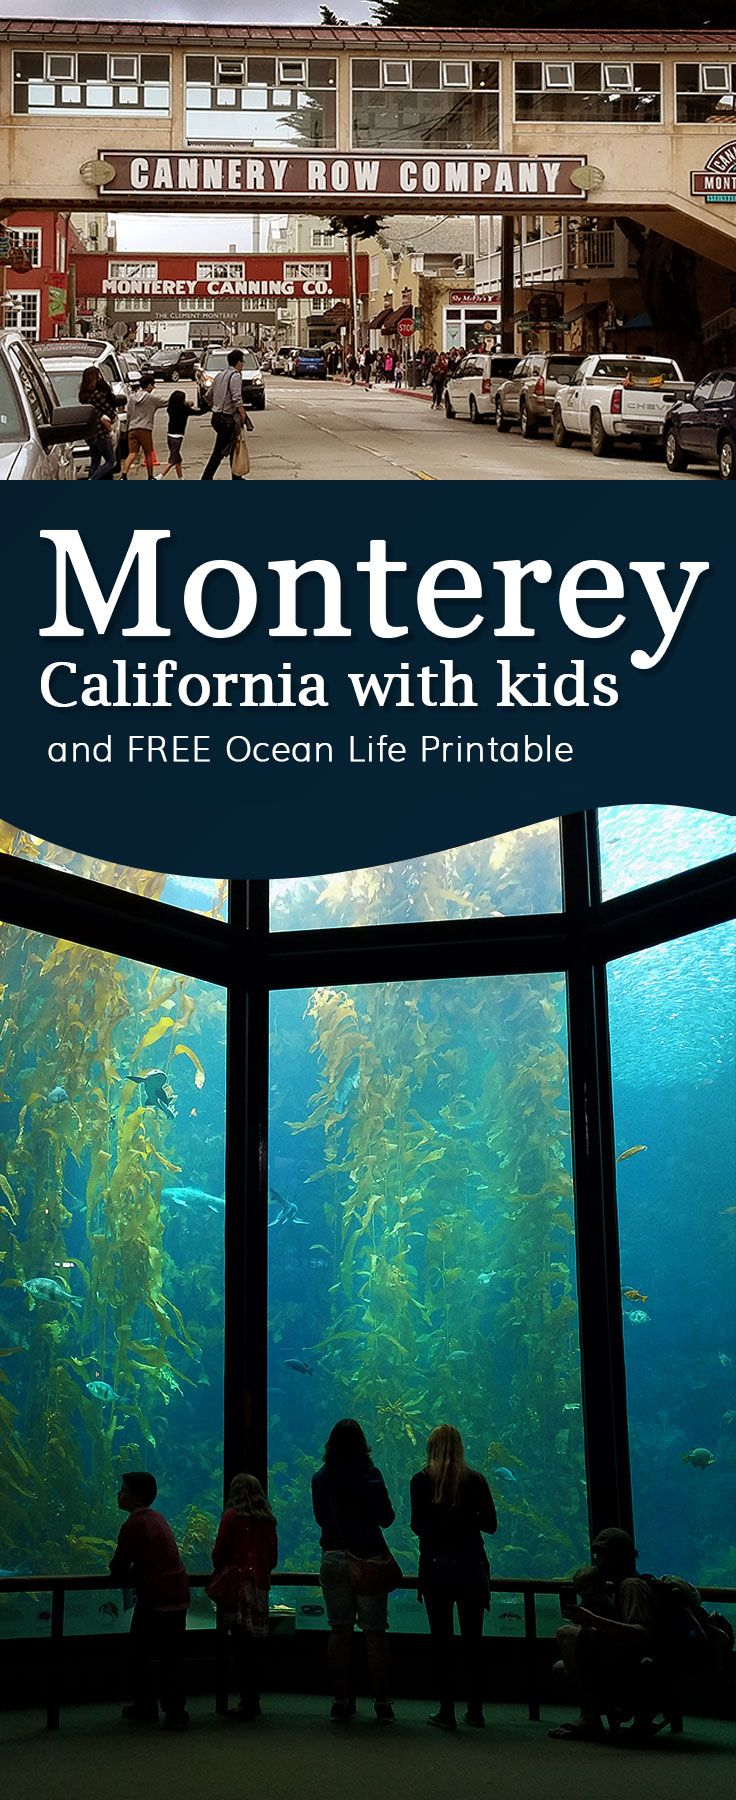 Monterey California - travel with kids. Free Jellyfish printable. Monterey Bay Aquarium and other places for families to check out!